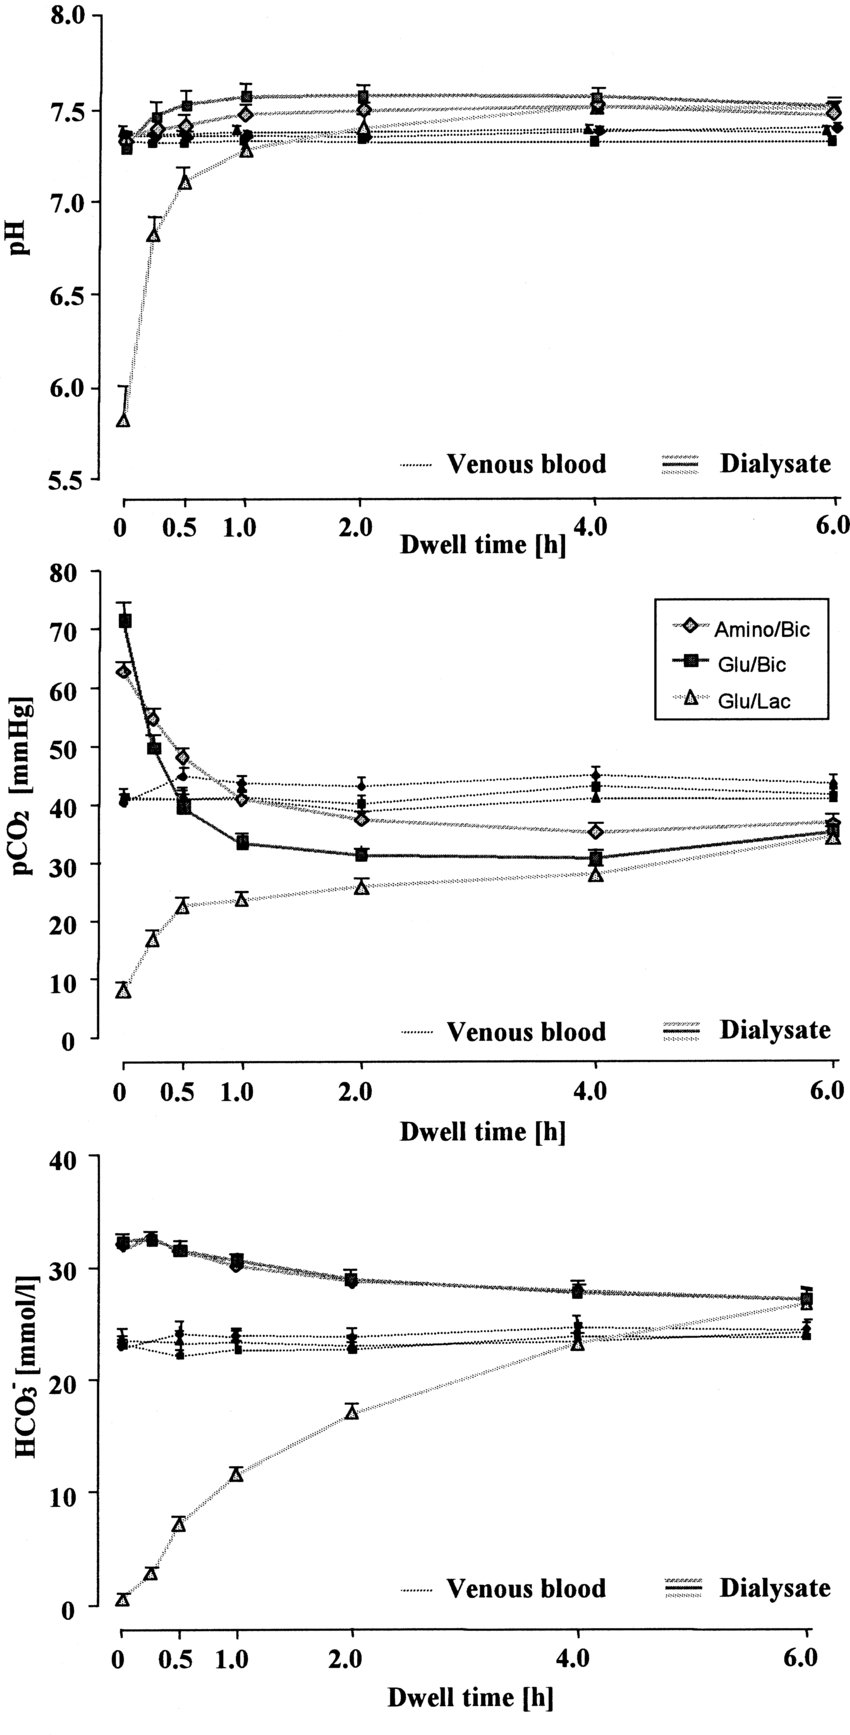 hight resolution of changes of acid base status in venous blood and dialysate during a 6 hour